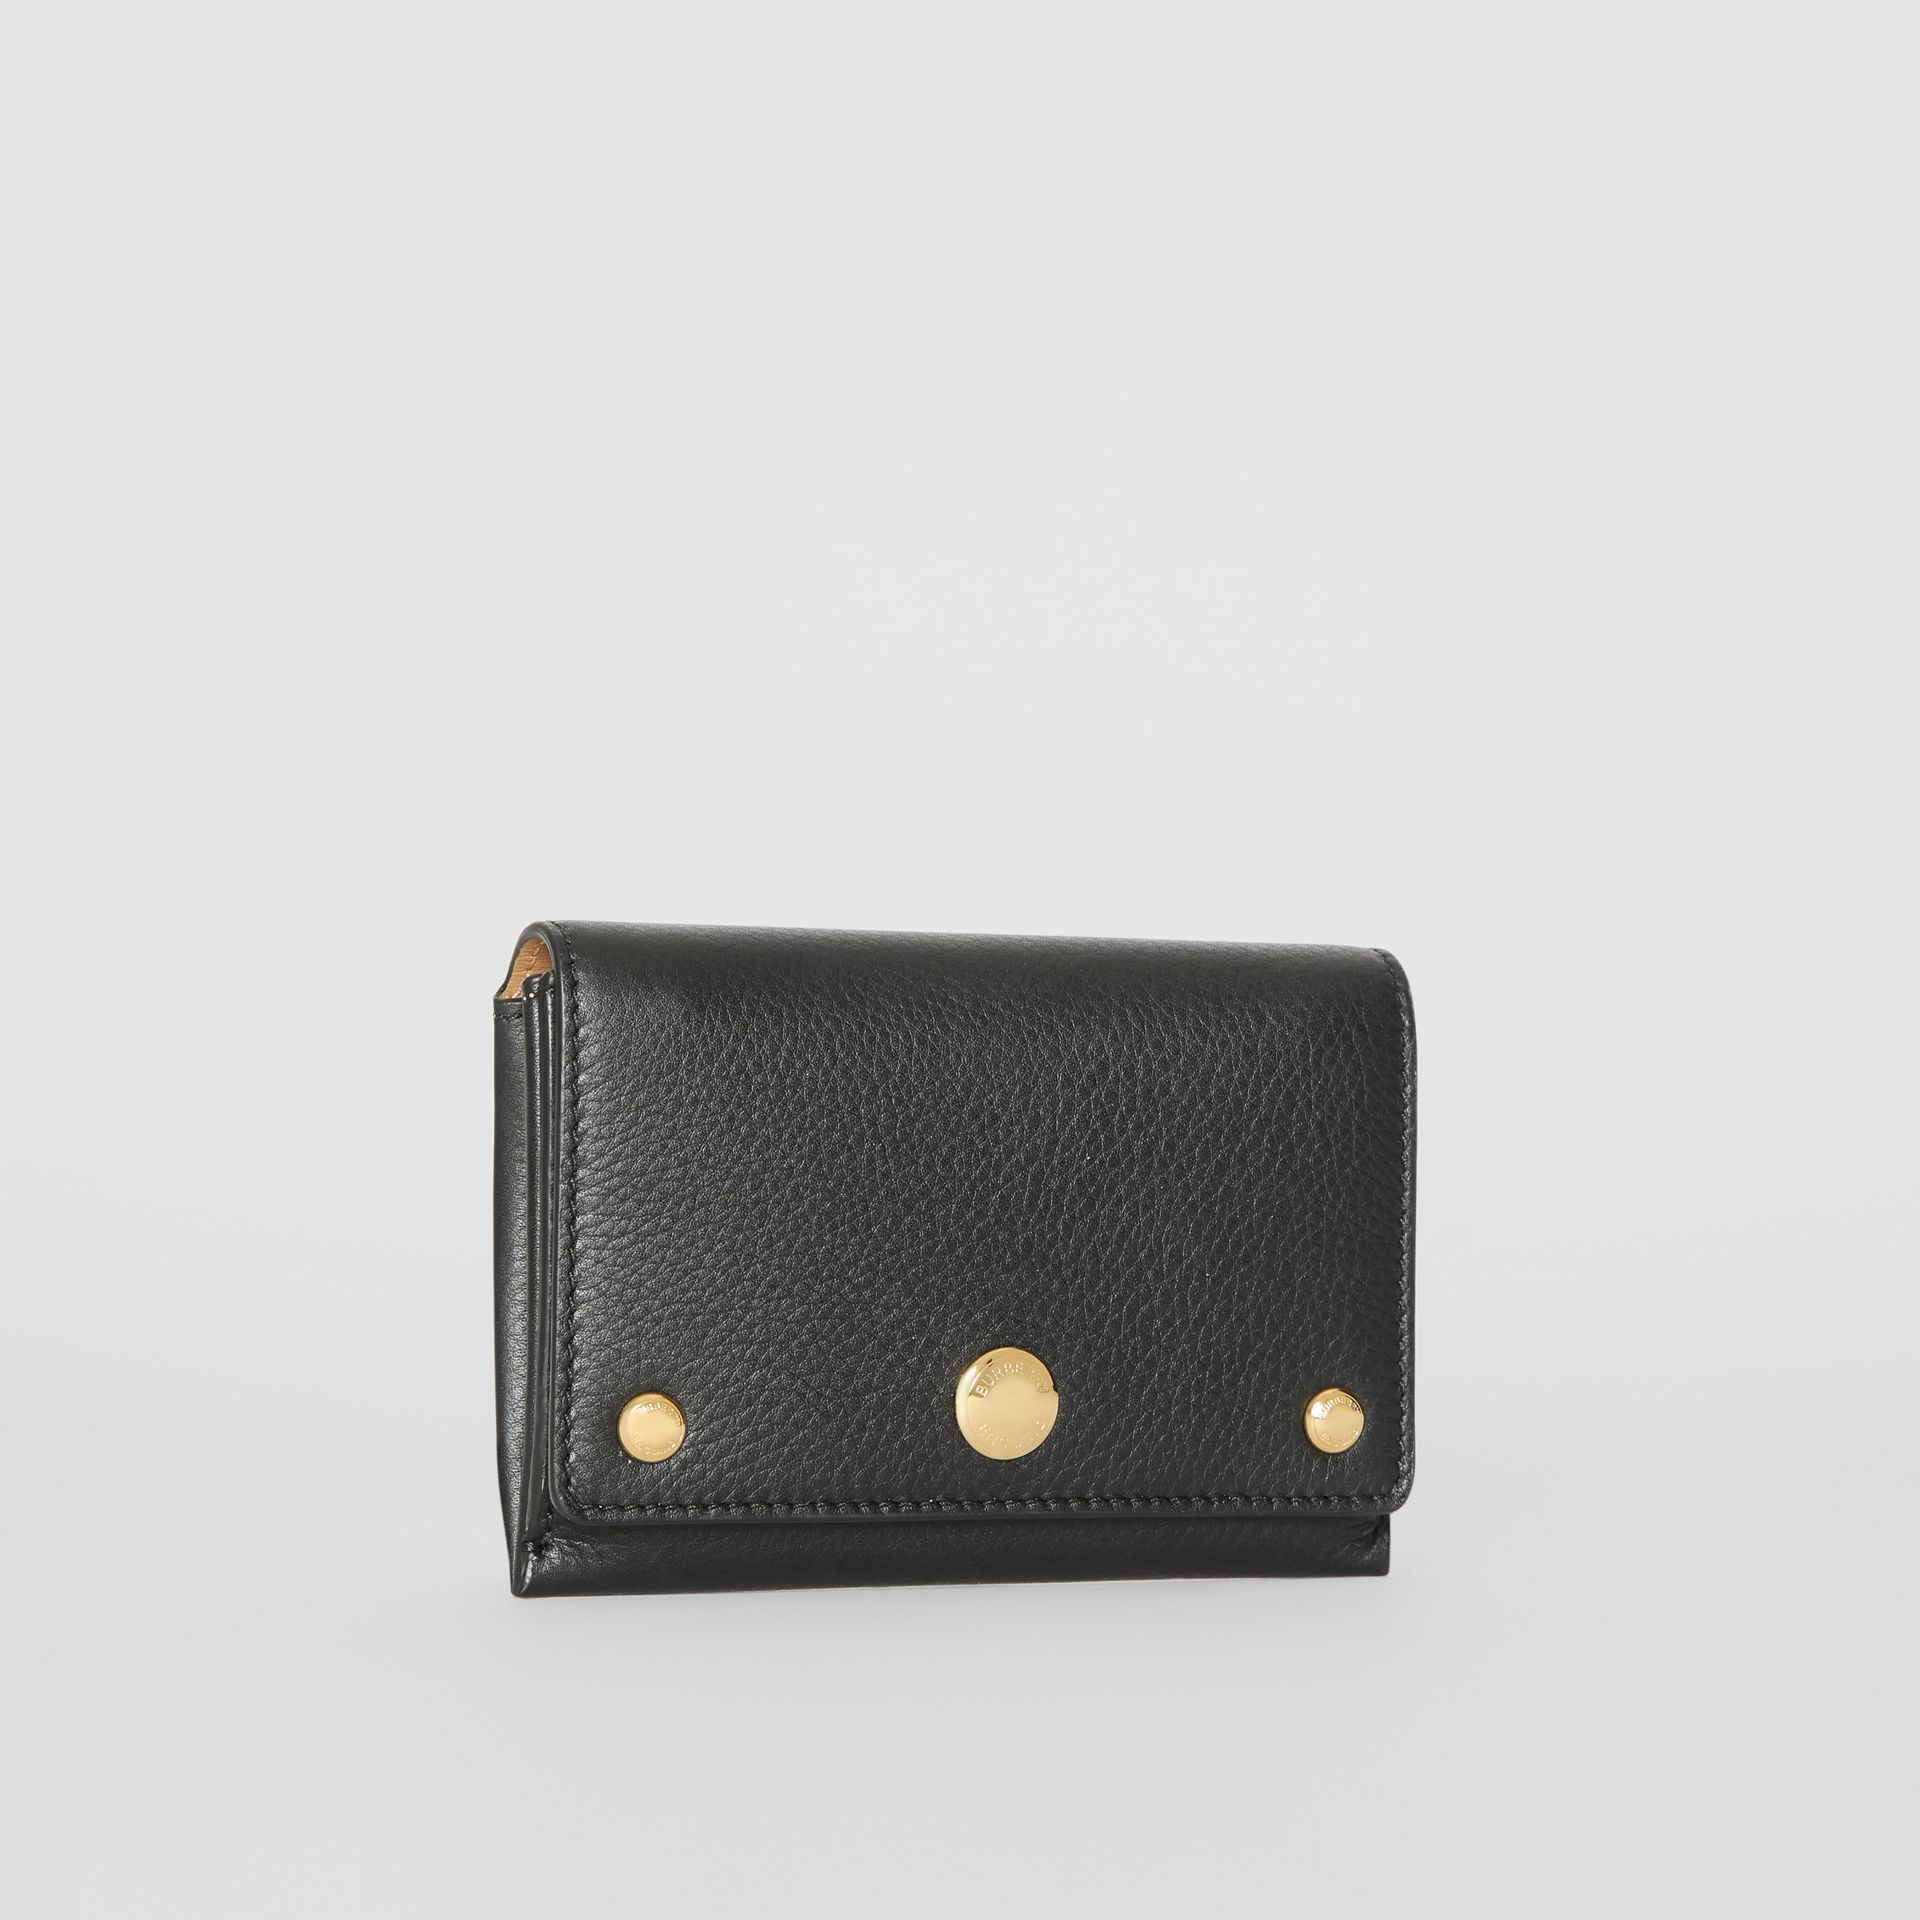 Triple Stud Leather Folding Wallet in Black - Women | Burberry - gallery image 4